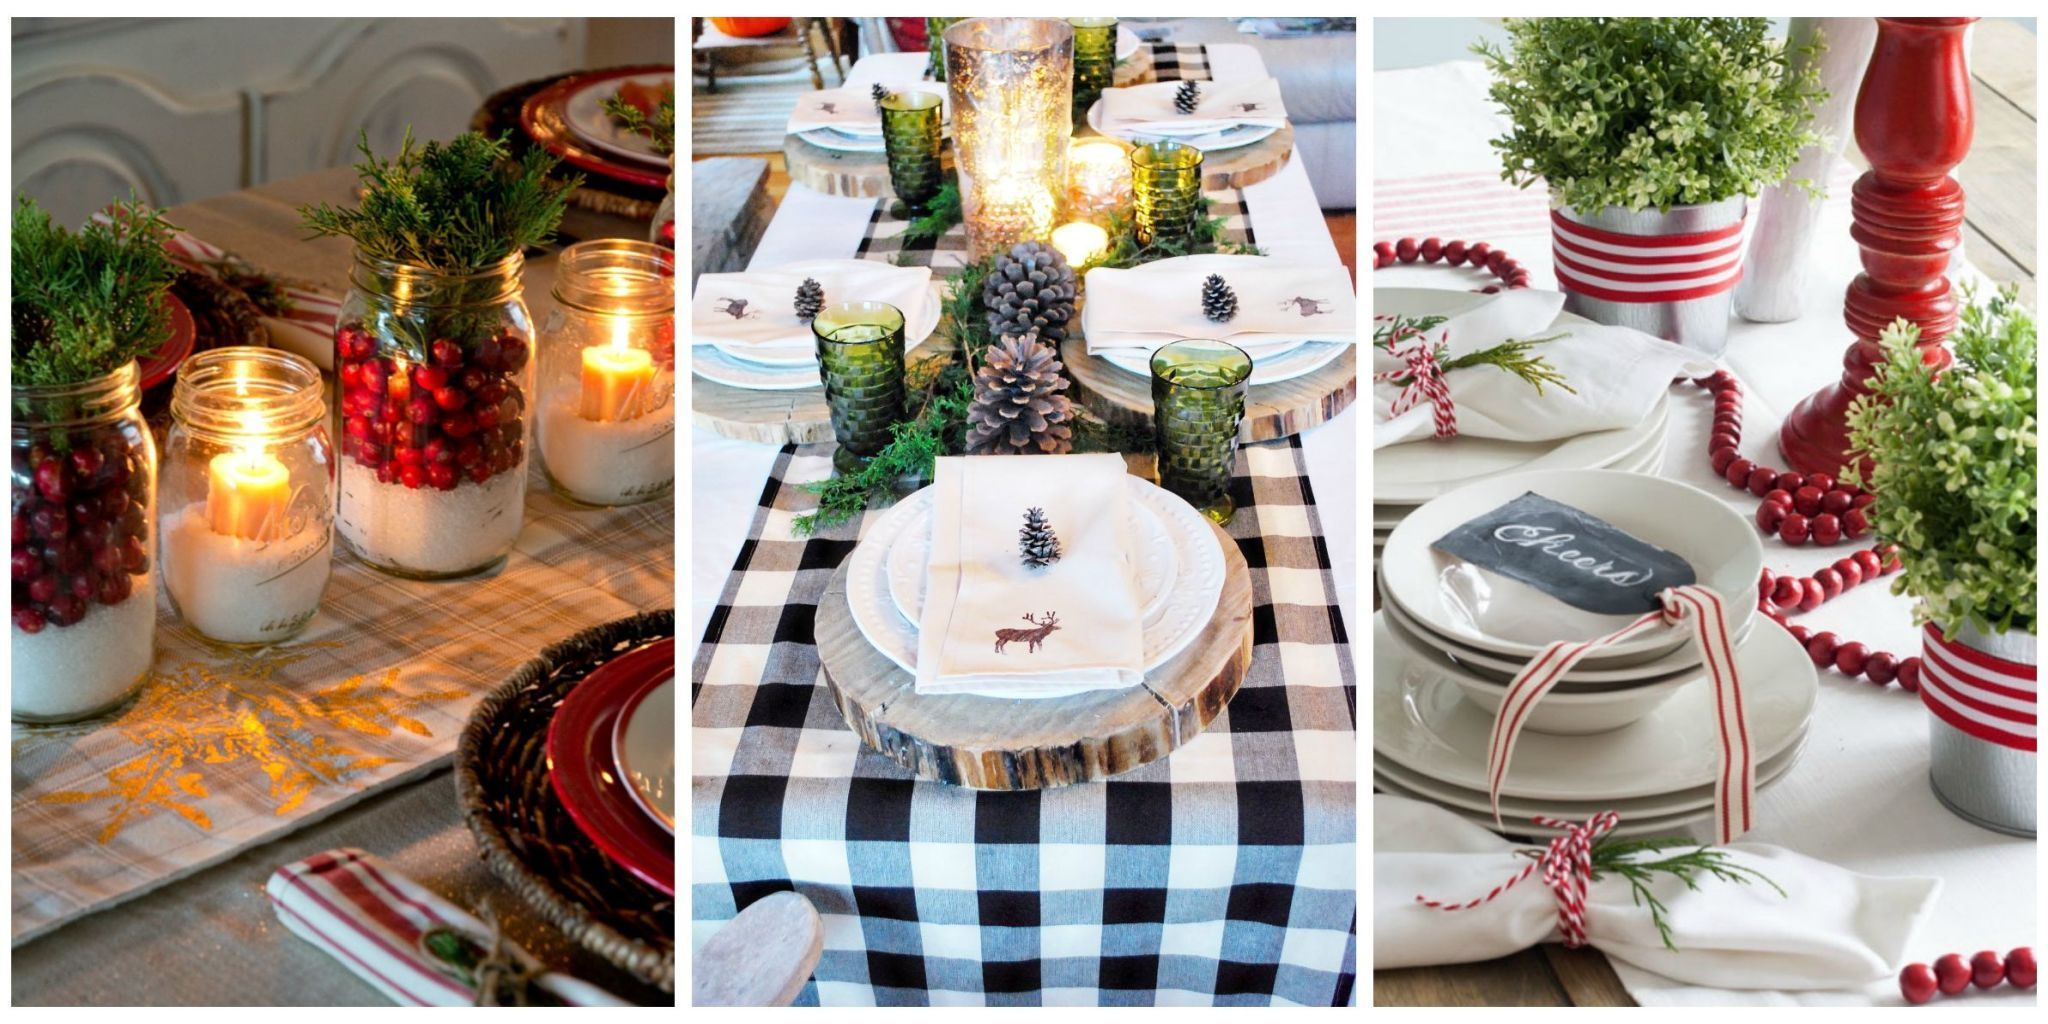 Spruce up your Christmas table with these creative and festive decorations. & 32 Christmas Table Decorations \u0026 Centerpieces - Ideas for Holiday ...